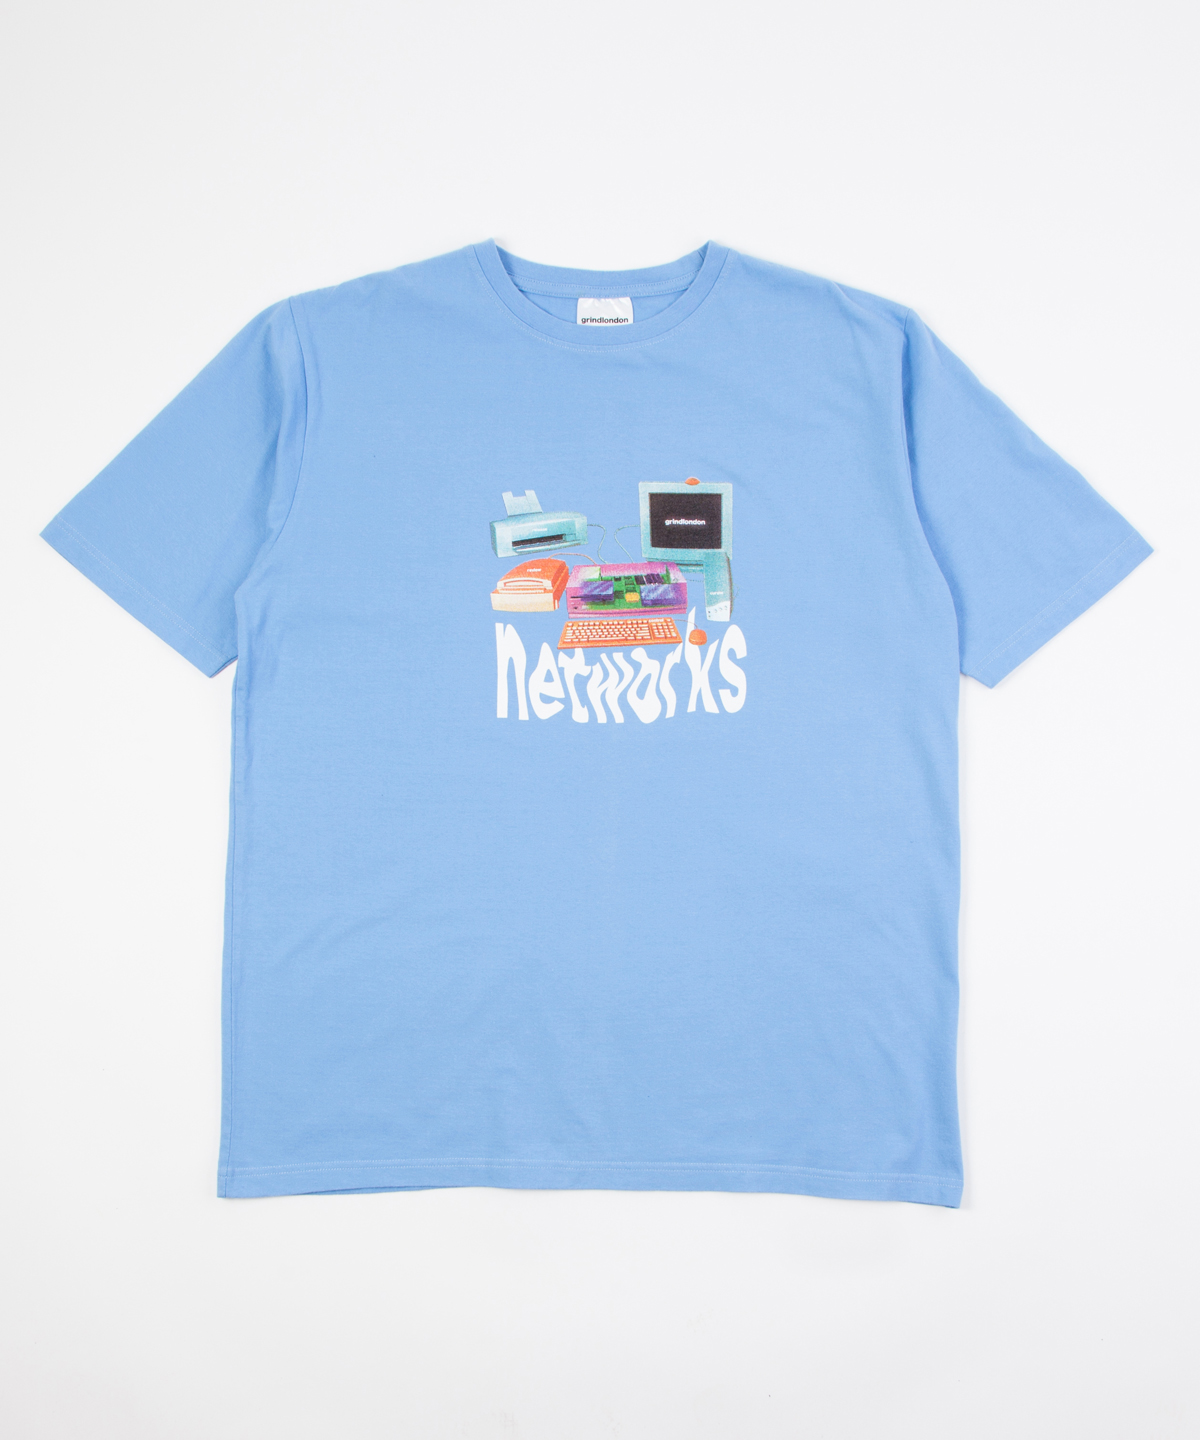 networks tee